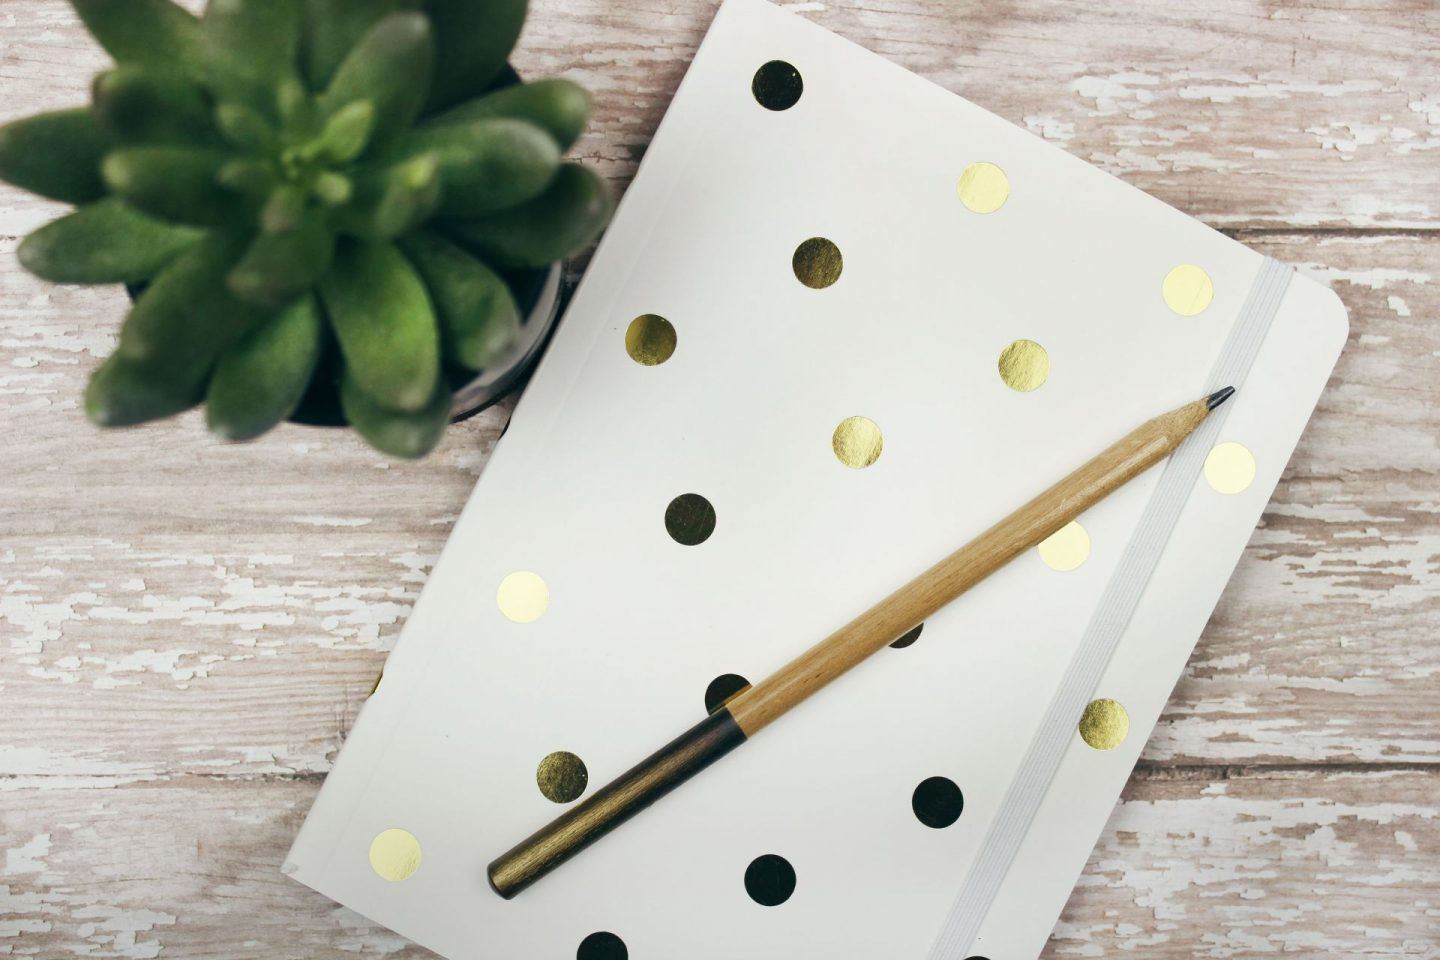 mental health during coronavirus - a white and gold polkadot notebook with a pencil placed on top and a small desk plant next to it, shot from above